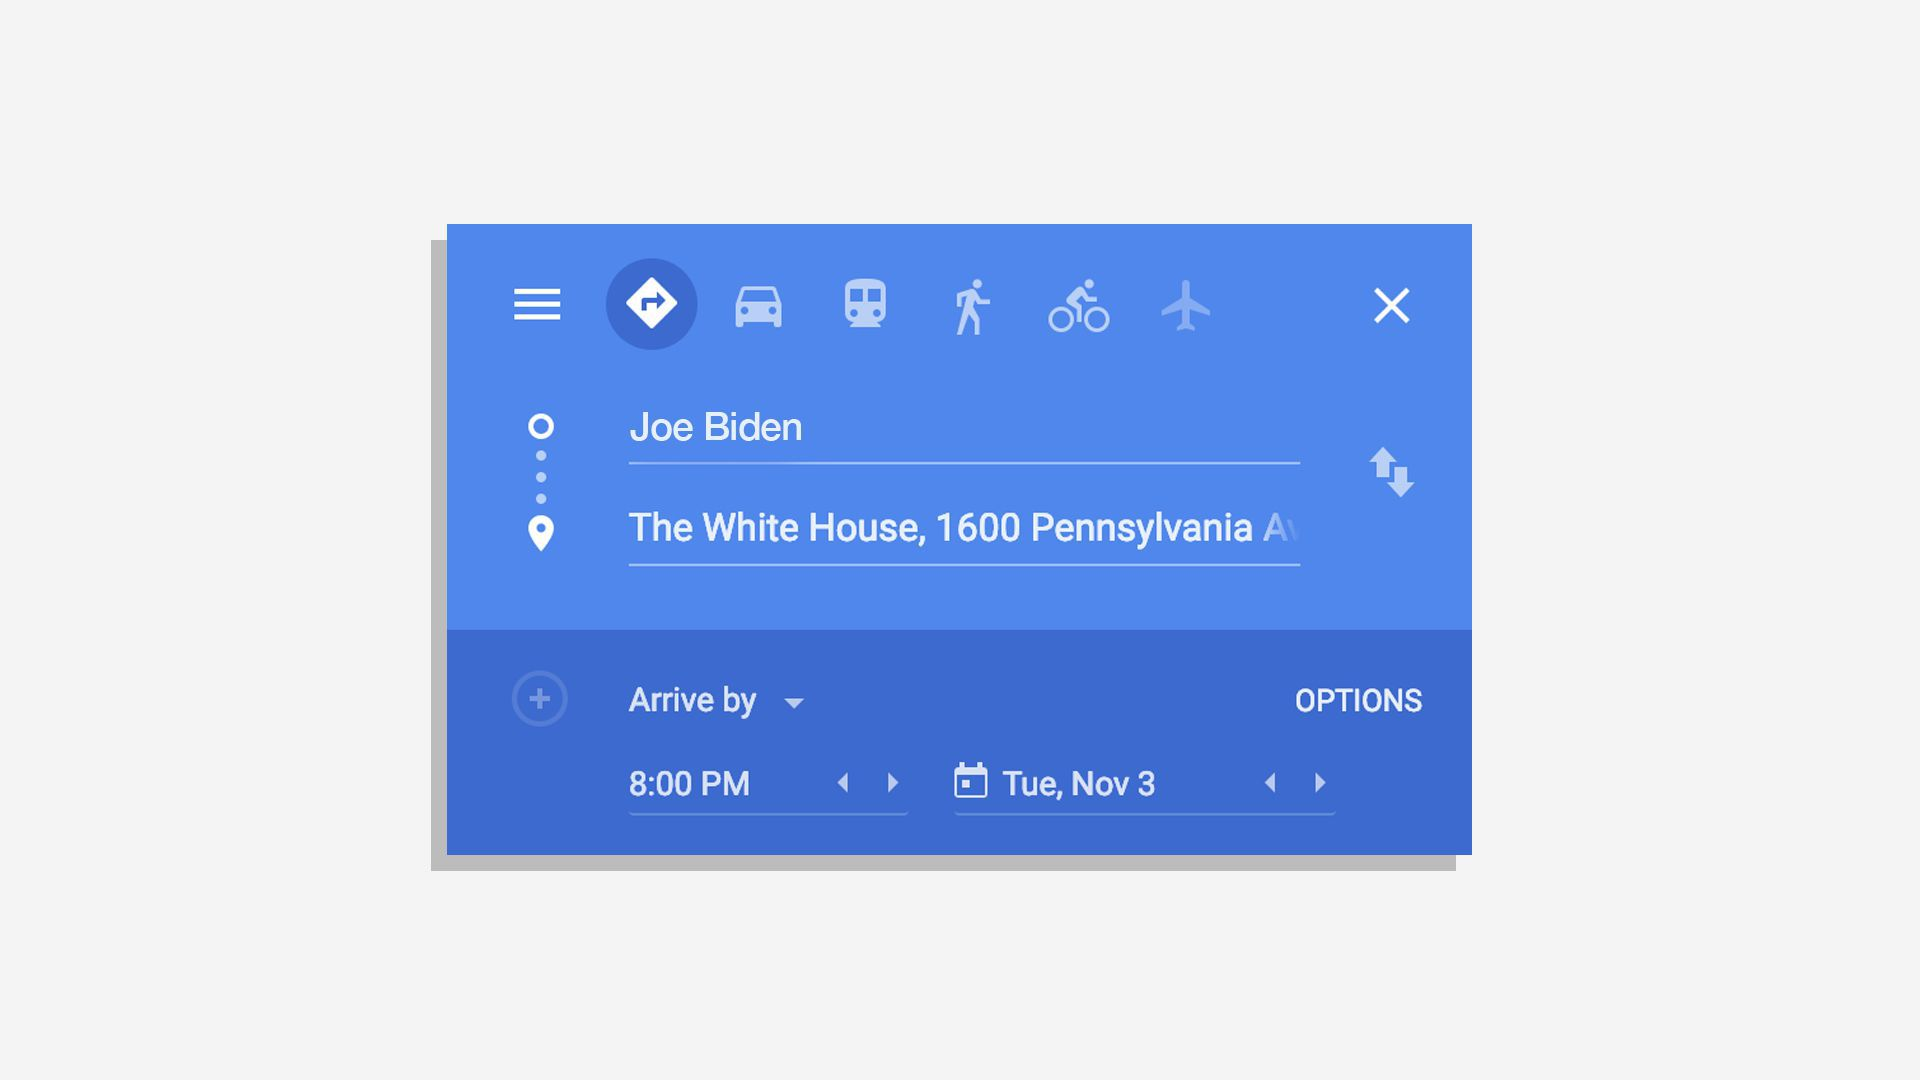 Google maps directions that says from Joe Biden to 1600 pennsylvania avenue